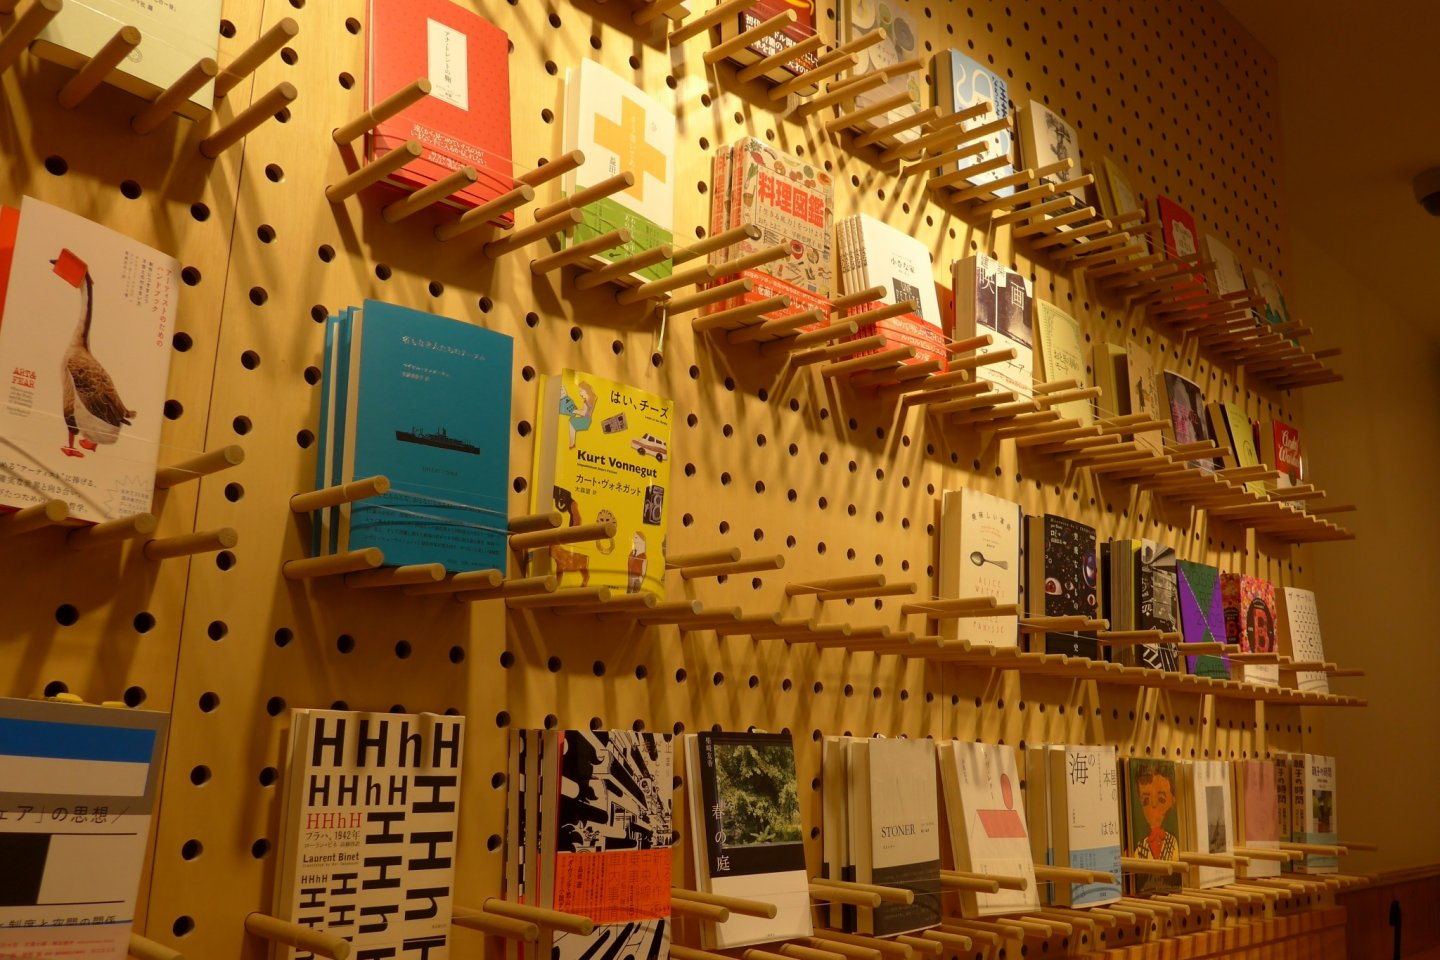 There are many books you can borrow, displayed on the walls of the cafe.